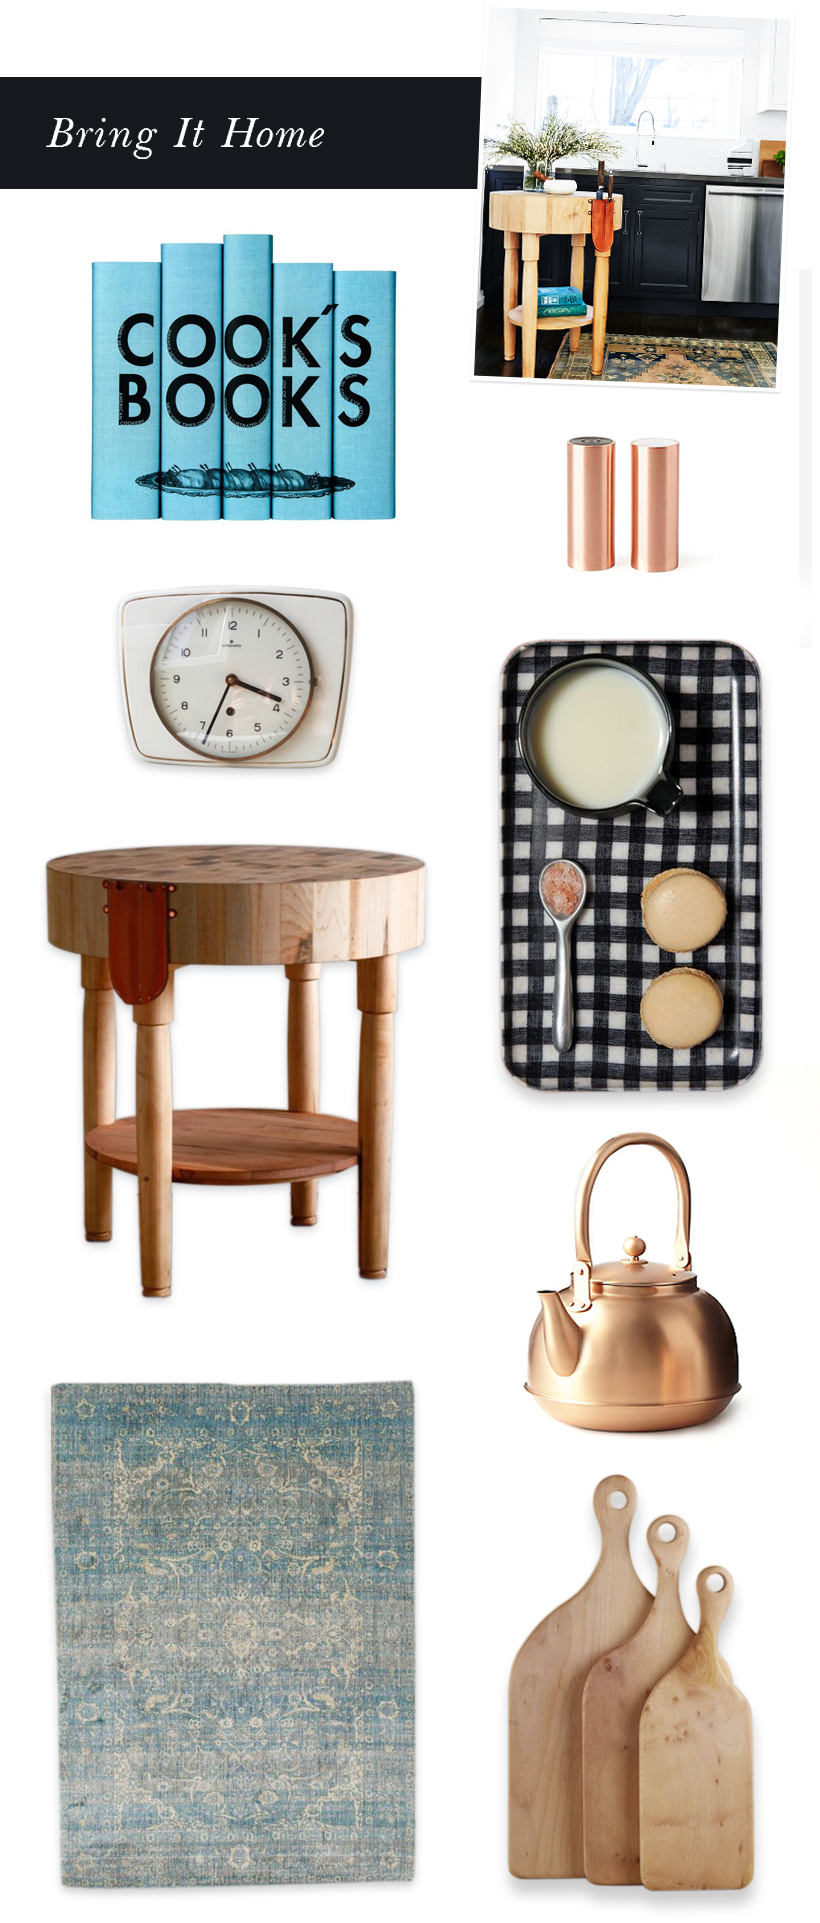 bring-it-home-kitchen-books - Camille Styles